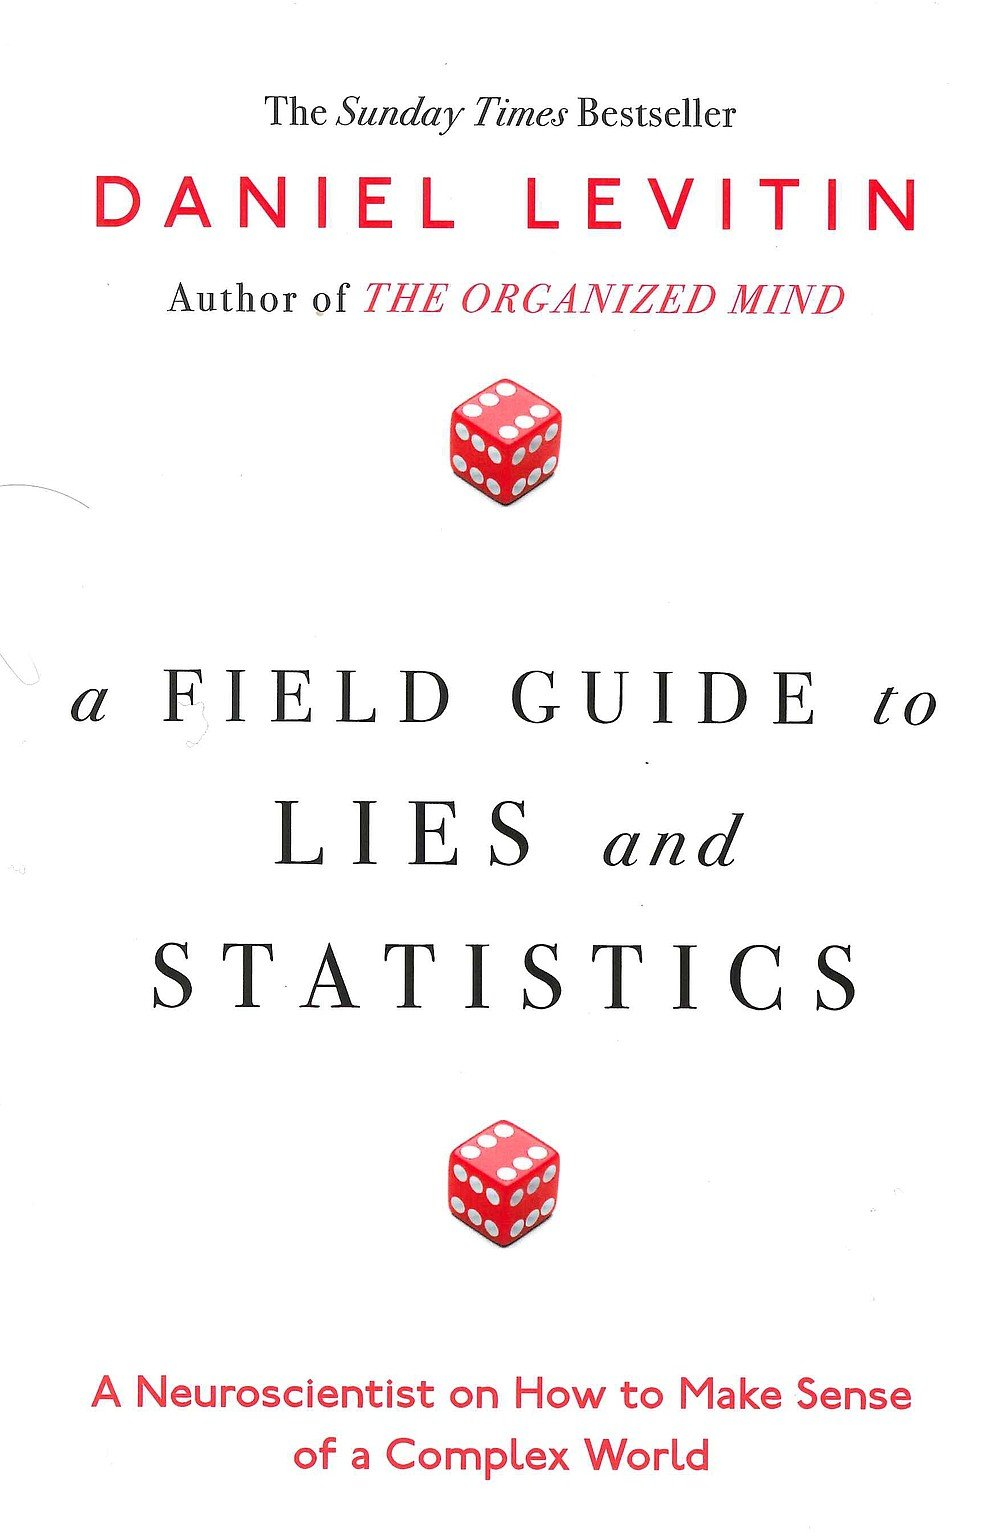 Daniel Levitin's Field Guide to Lies and Statistics